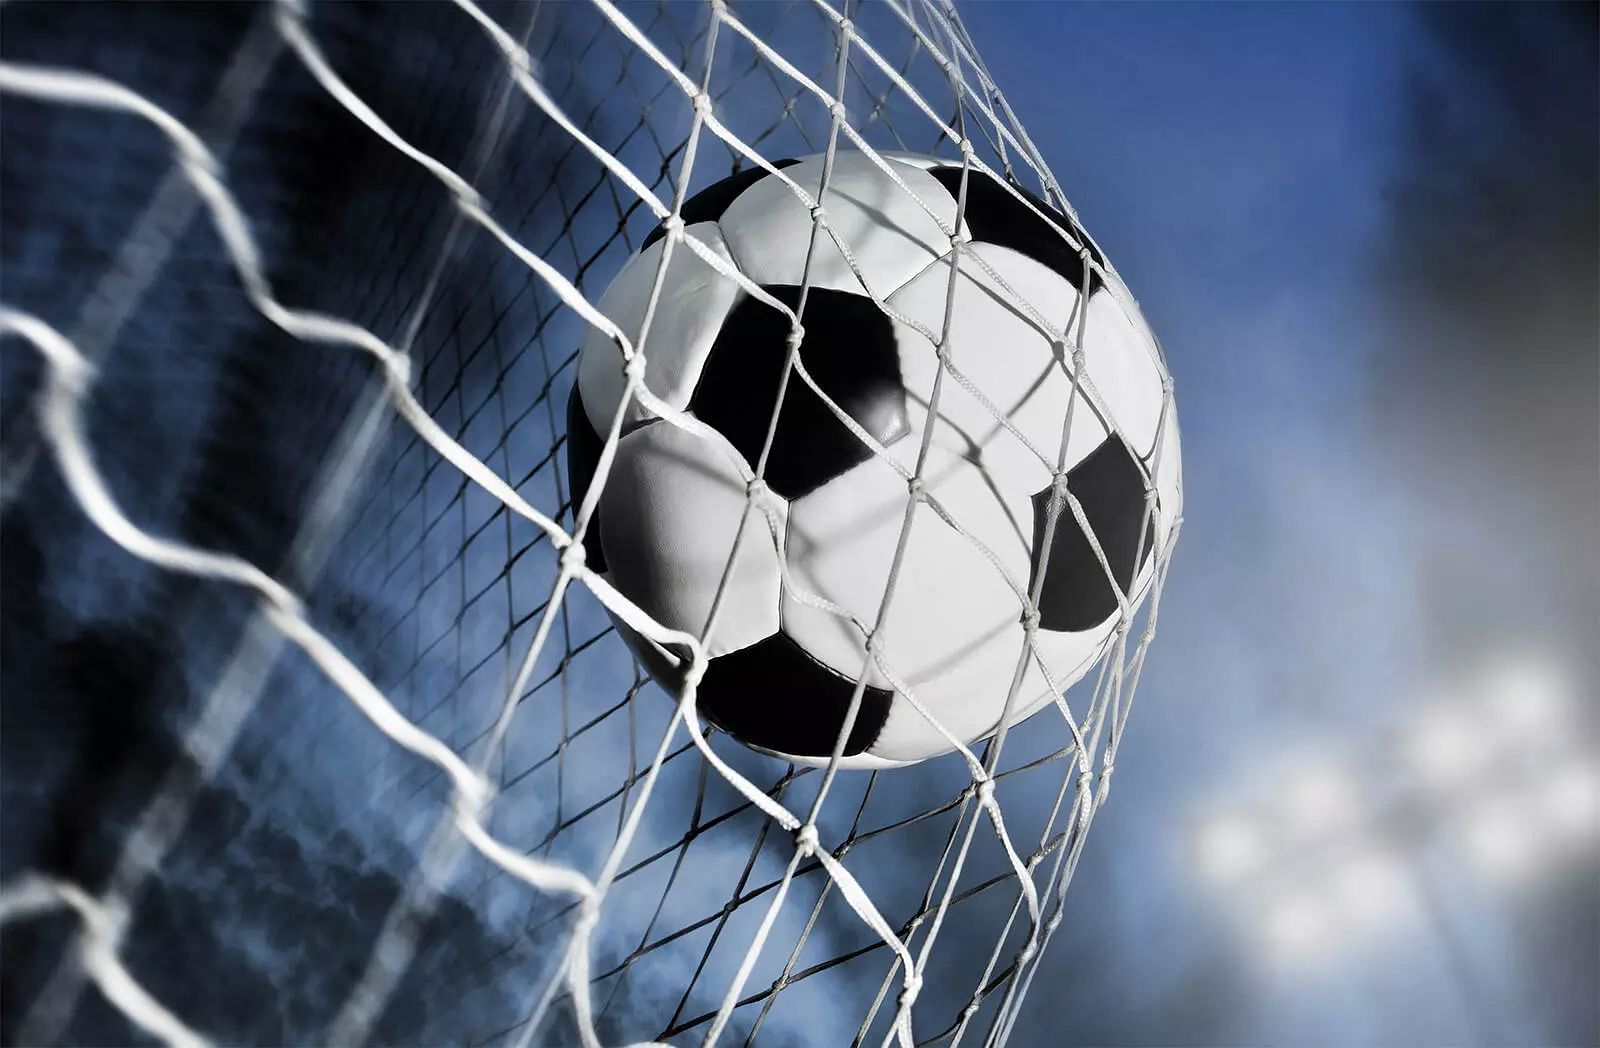 GCFC, GTC are qualified for quarter finals in U-12 category of GGBL